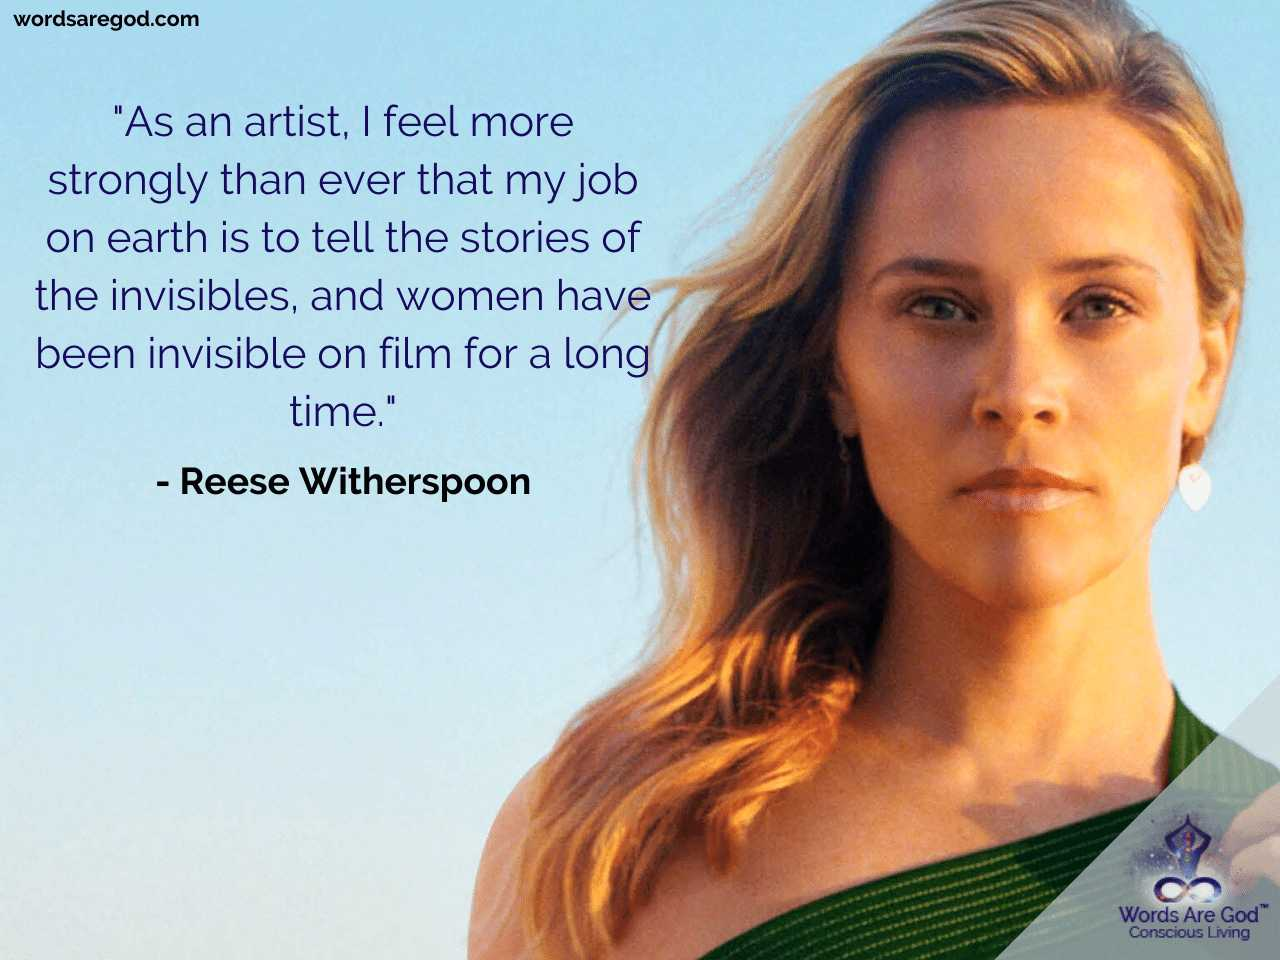 Reese Witherspoon Inspirational Quotes by Reese Witherspoon